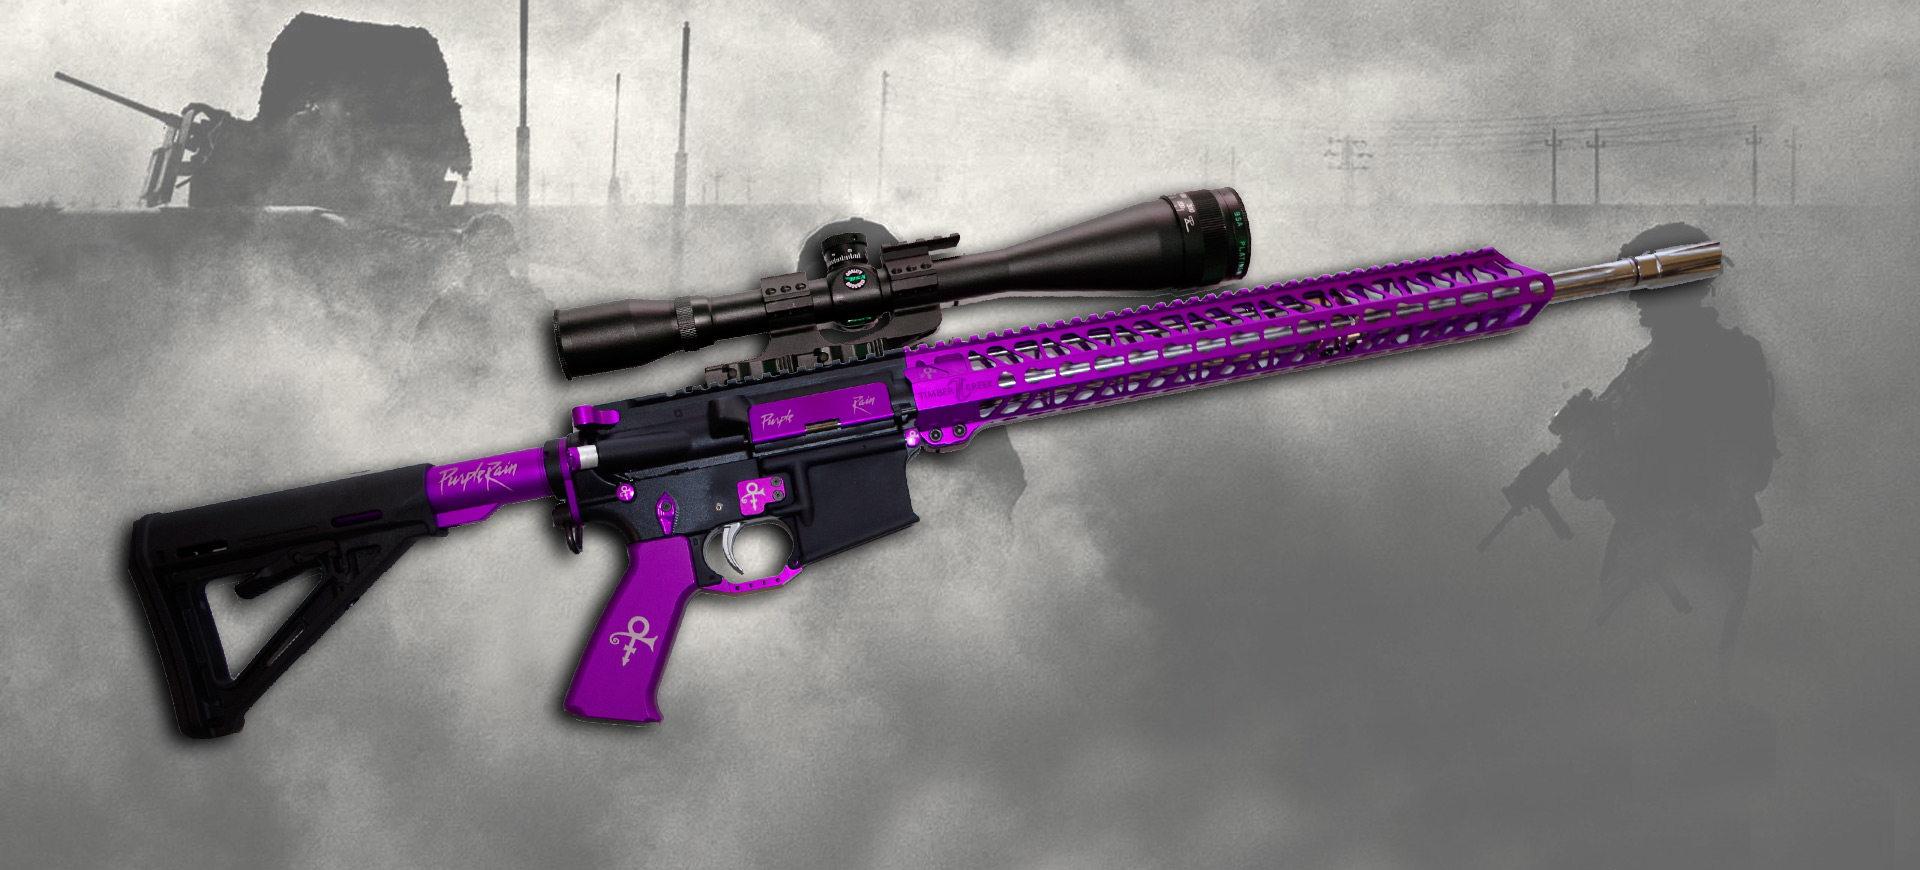 ar15-anodized-purple-gun